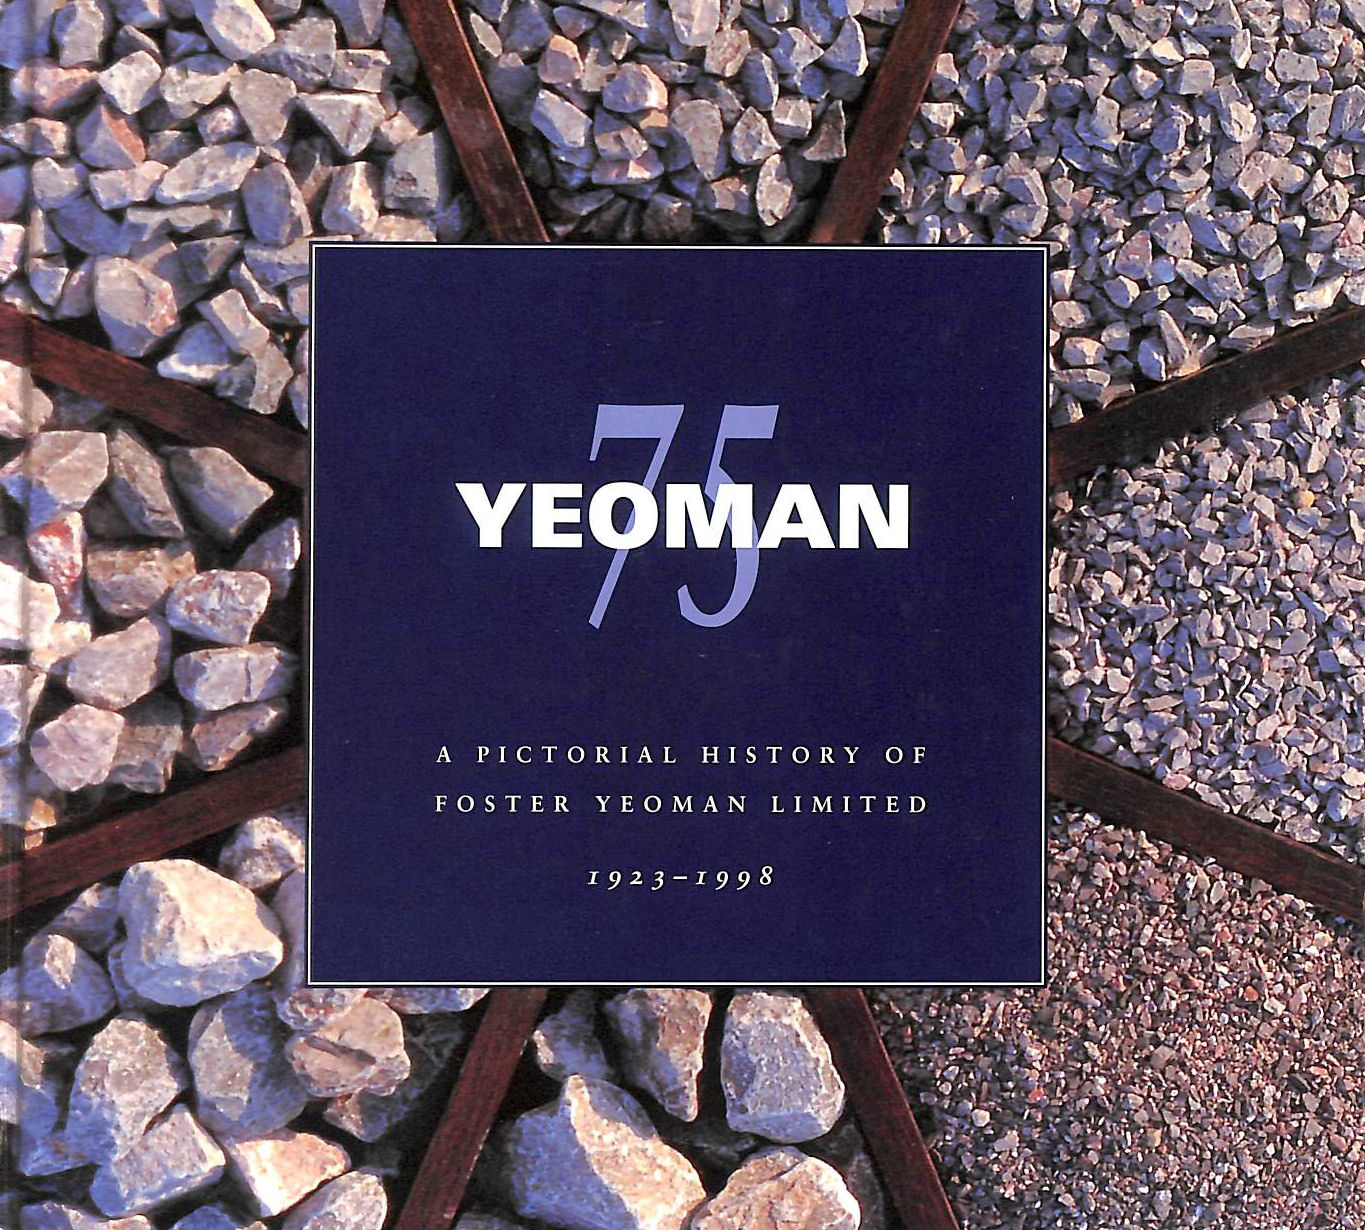 Image for Yeoman 75: A Pictorial History of Foster Yeoman Limited 1923 - 1998